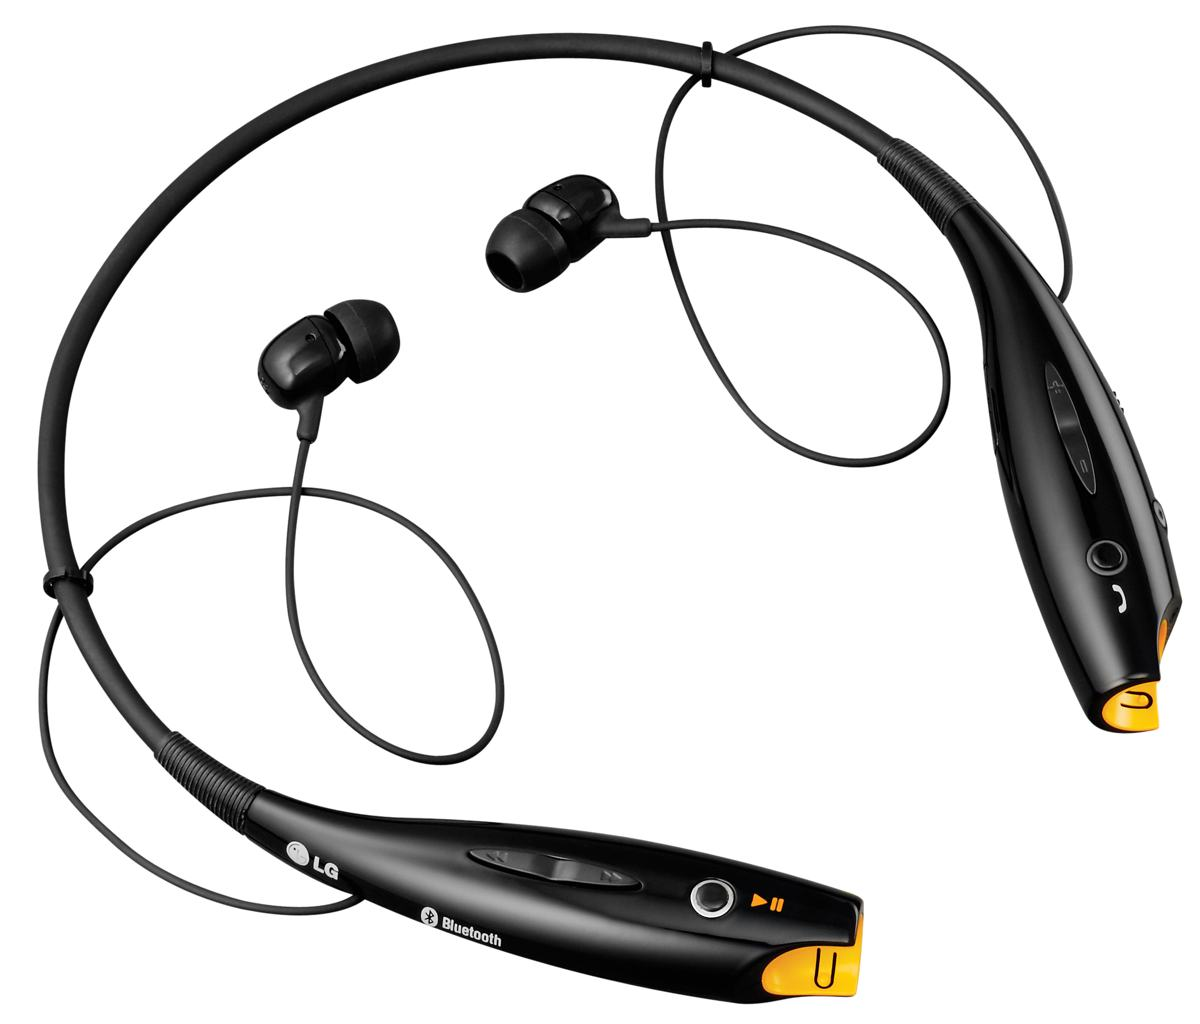 LG Tone Wireless Bluetooth Stereo Headset